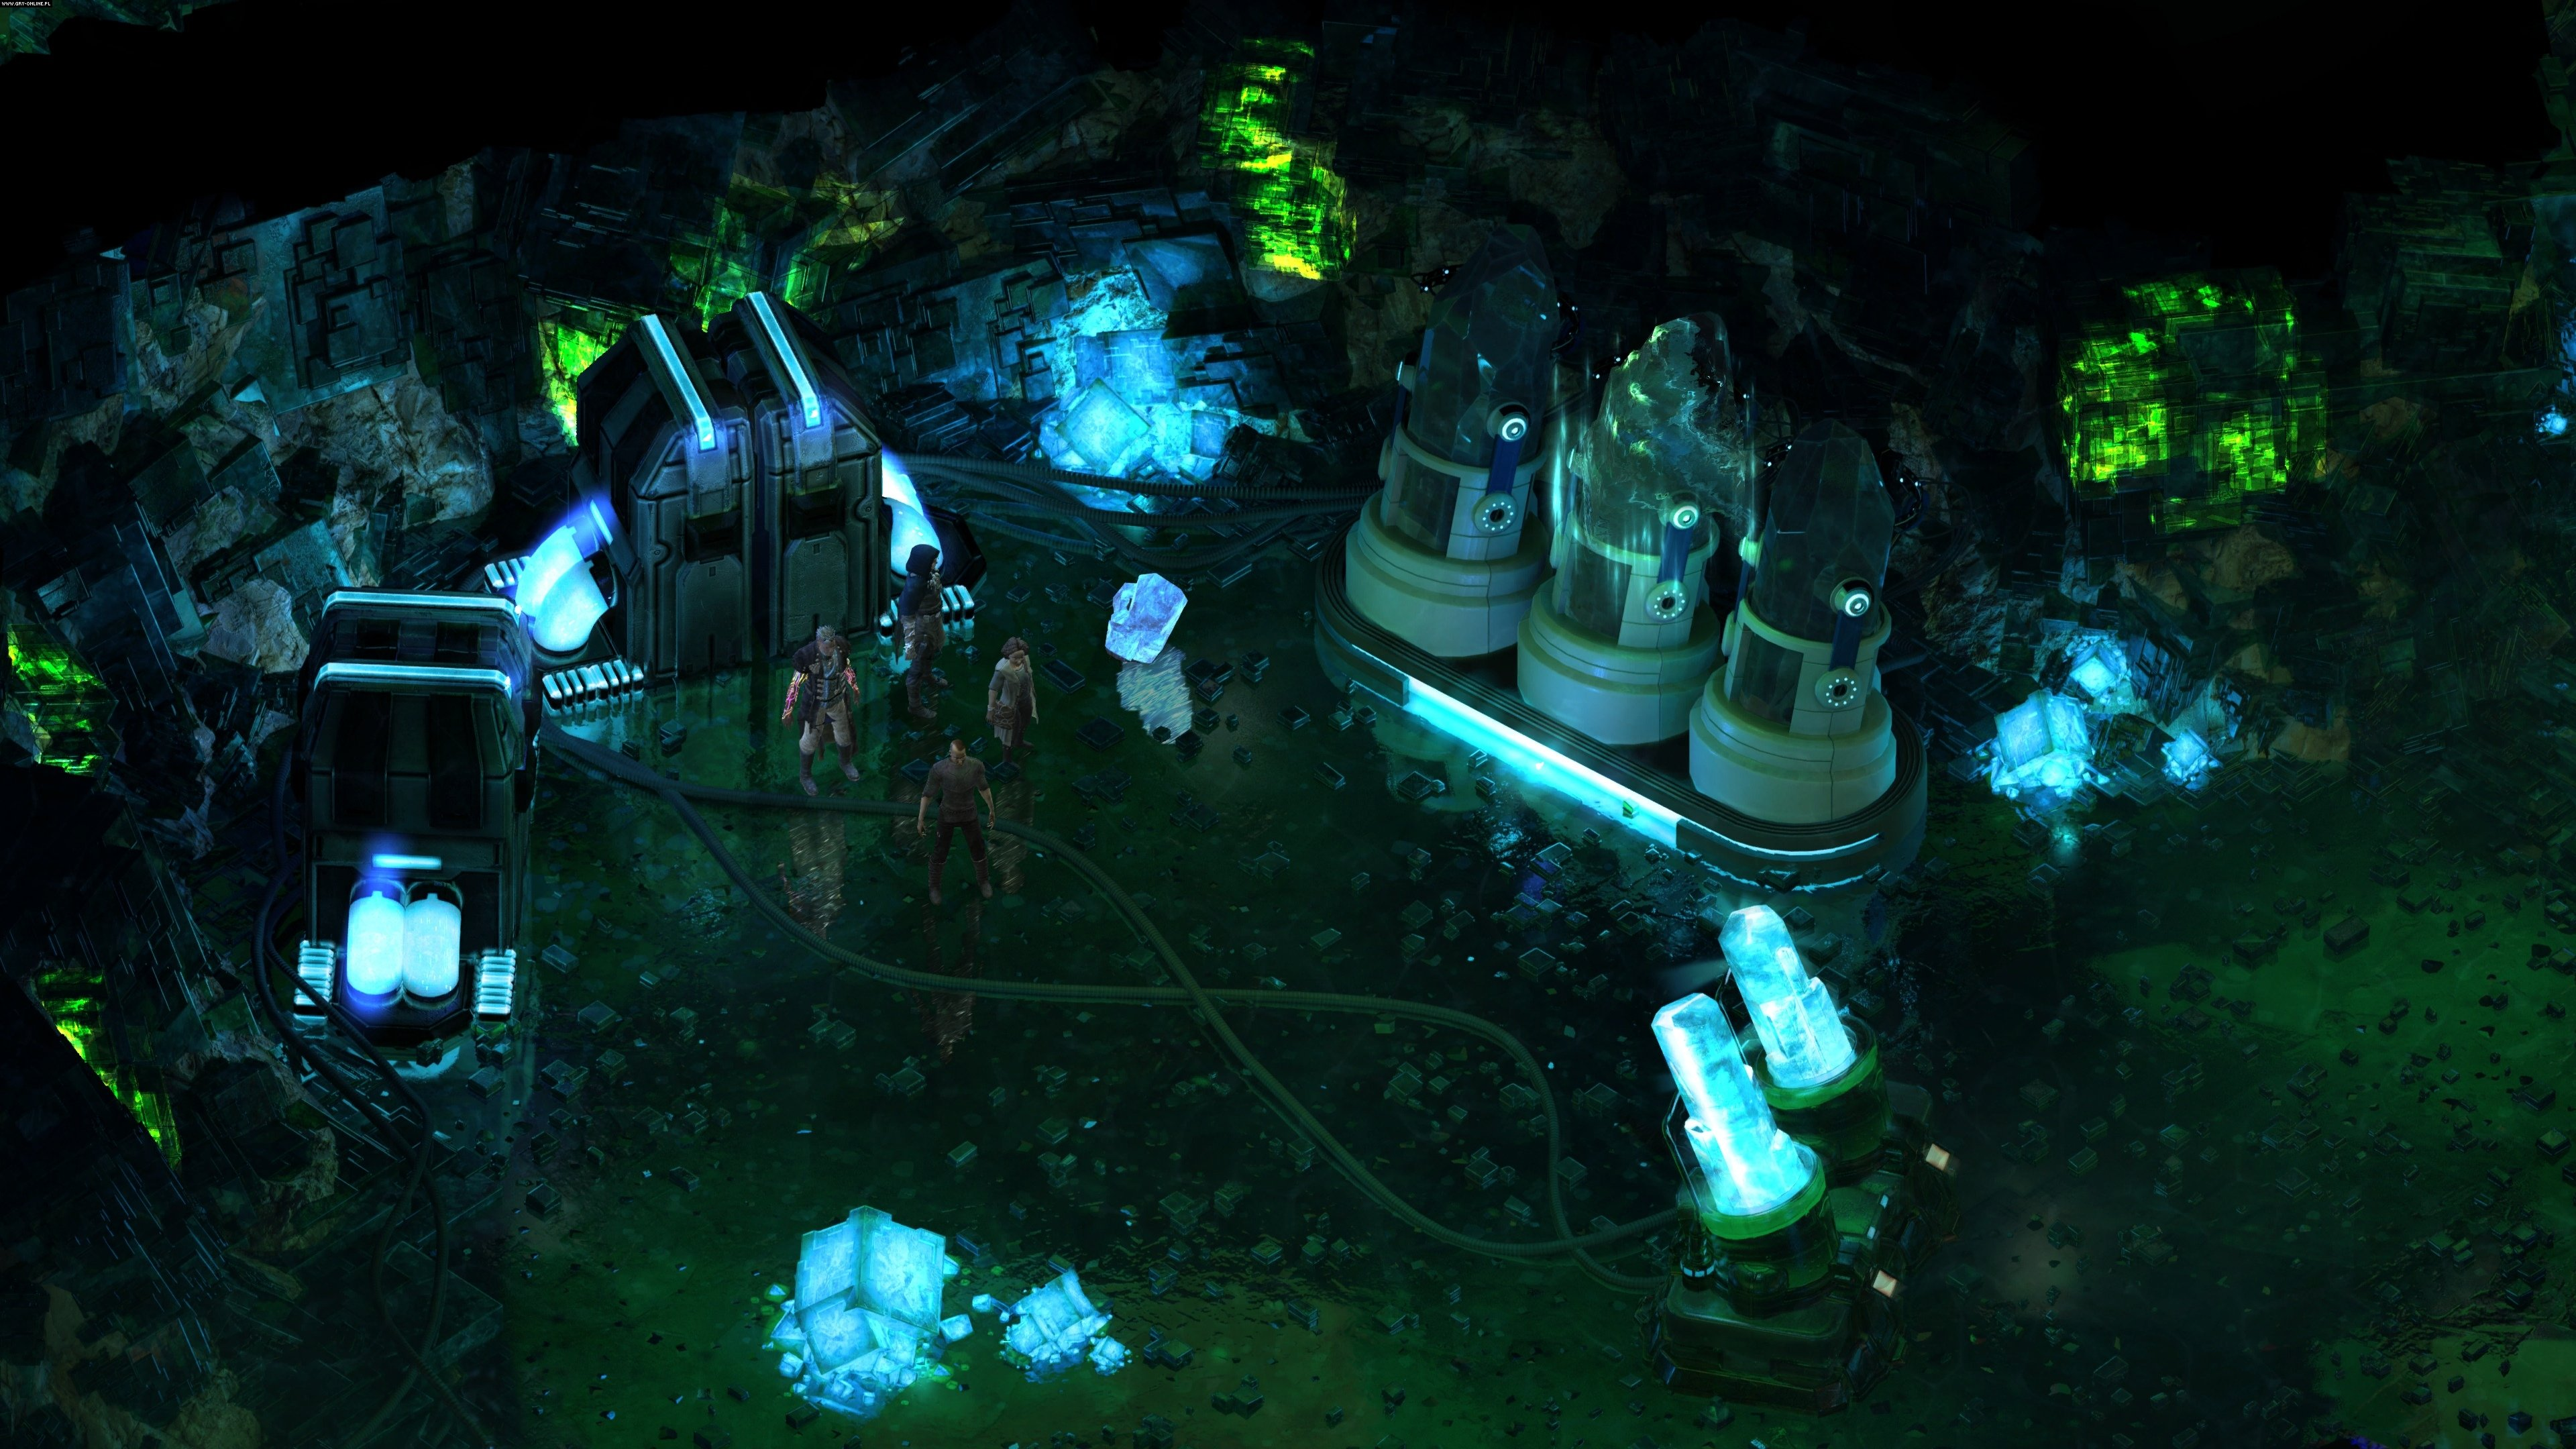 Torment: Tides of Numenera PC, PS4, XONE Games Image 10/28, inXile entertainment, Techland